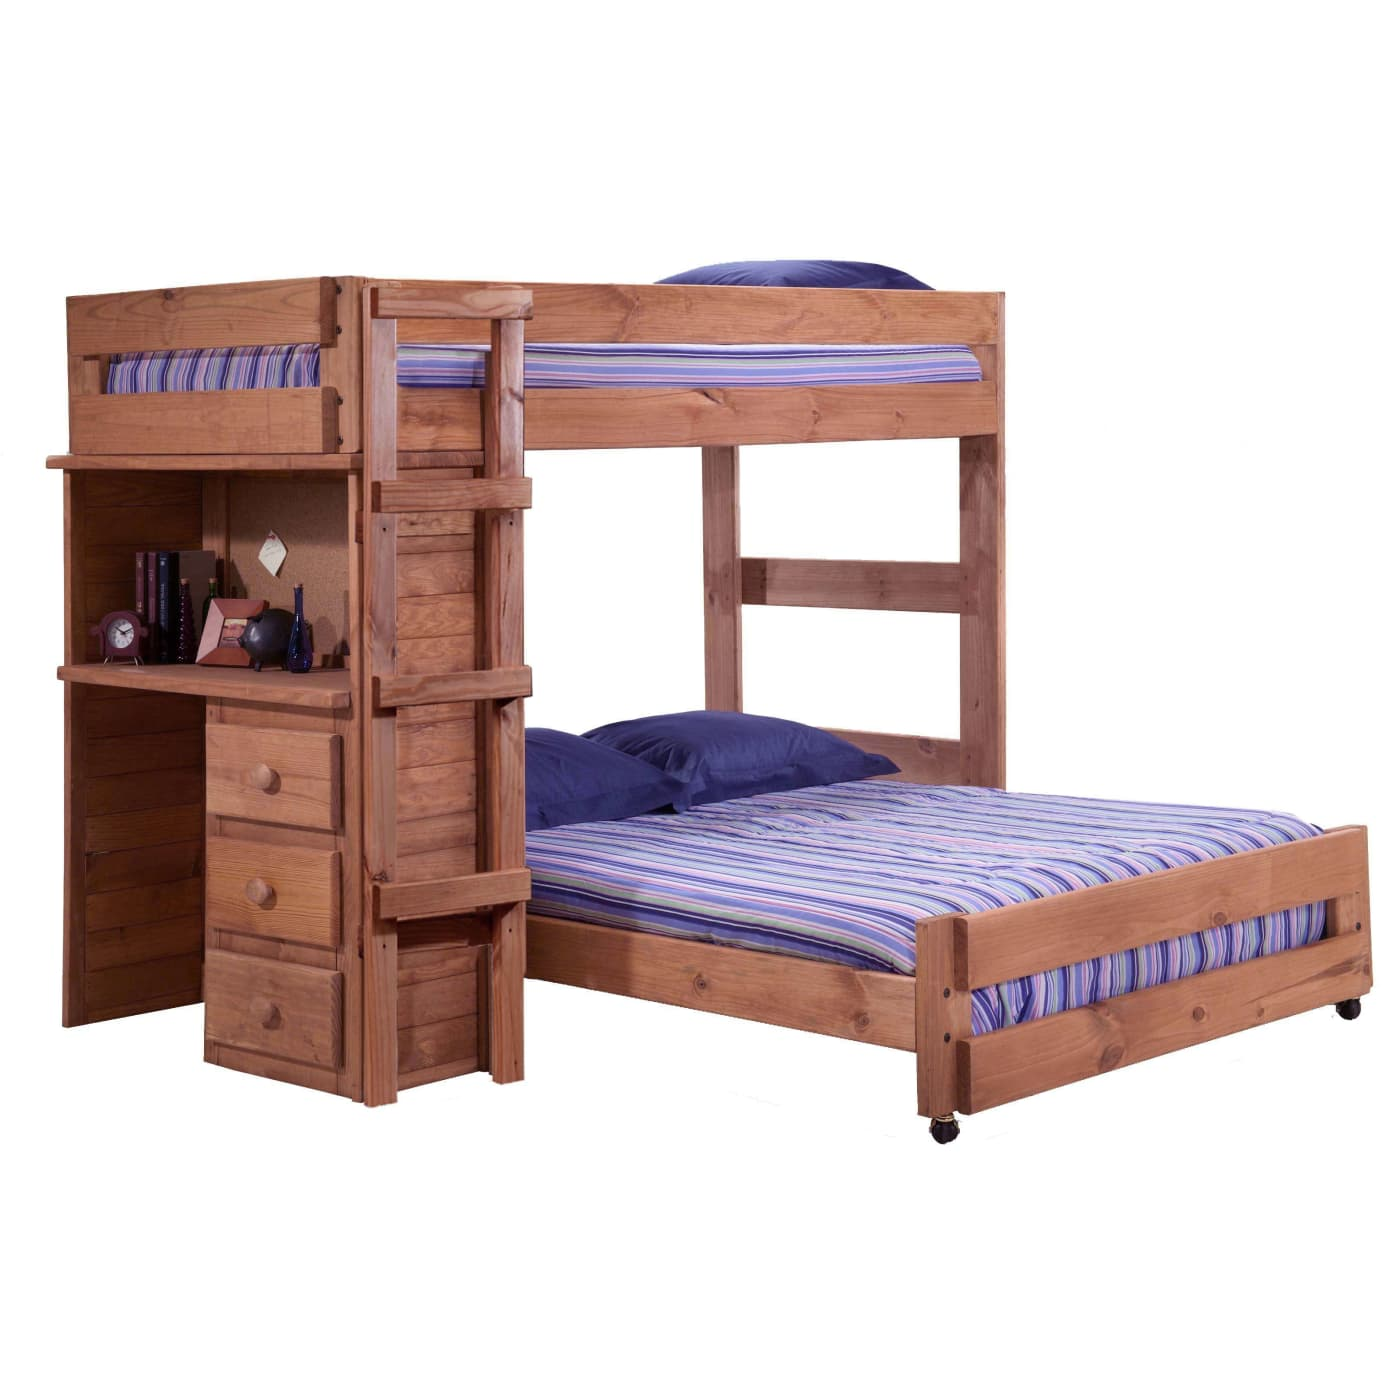 Includes Slat Pack S Furniture Colors May Vary Based On Computer Monitor And Room Lighting Gany Stain Twin Over Full Loft Bed With Desk End